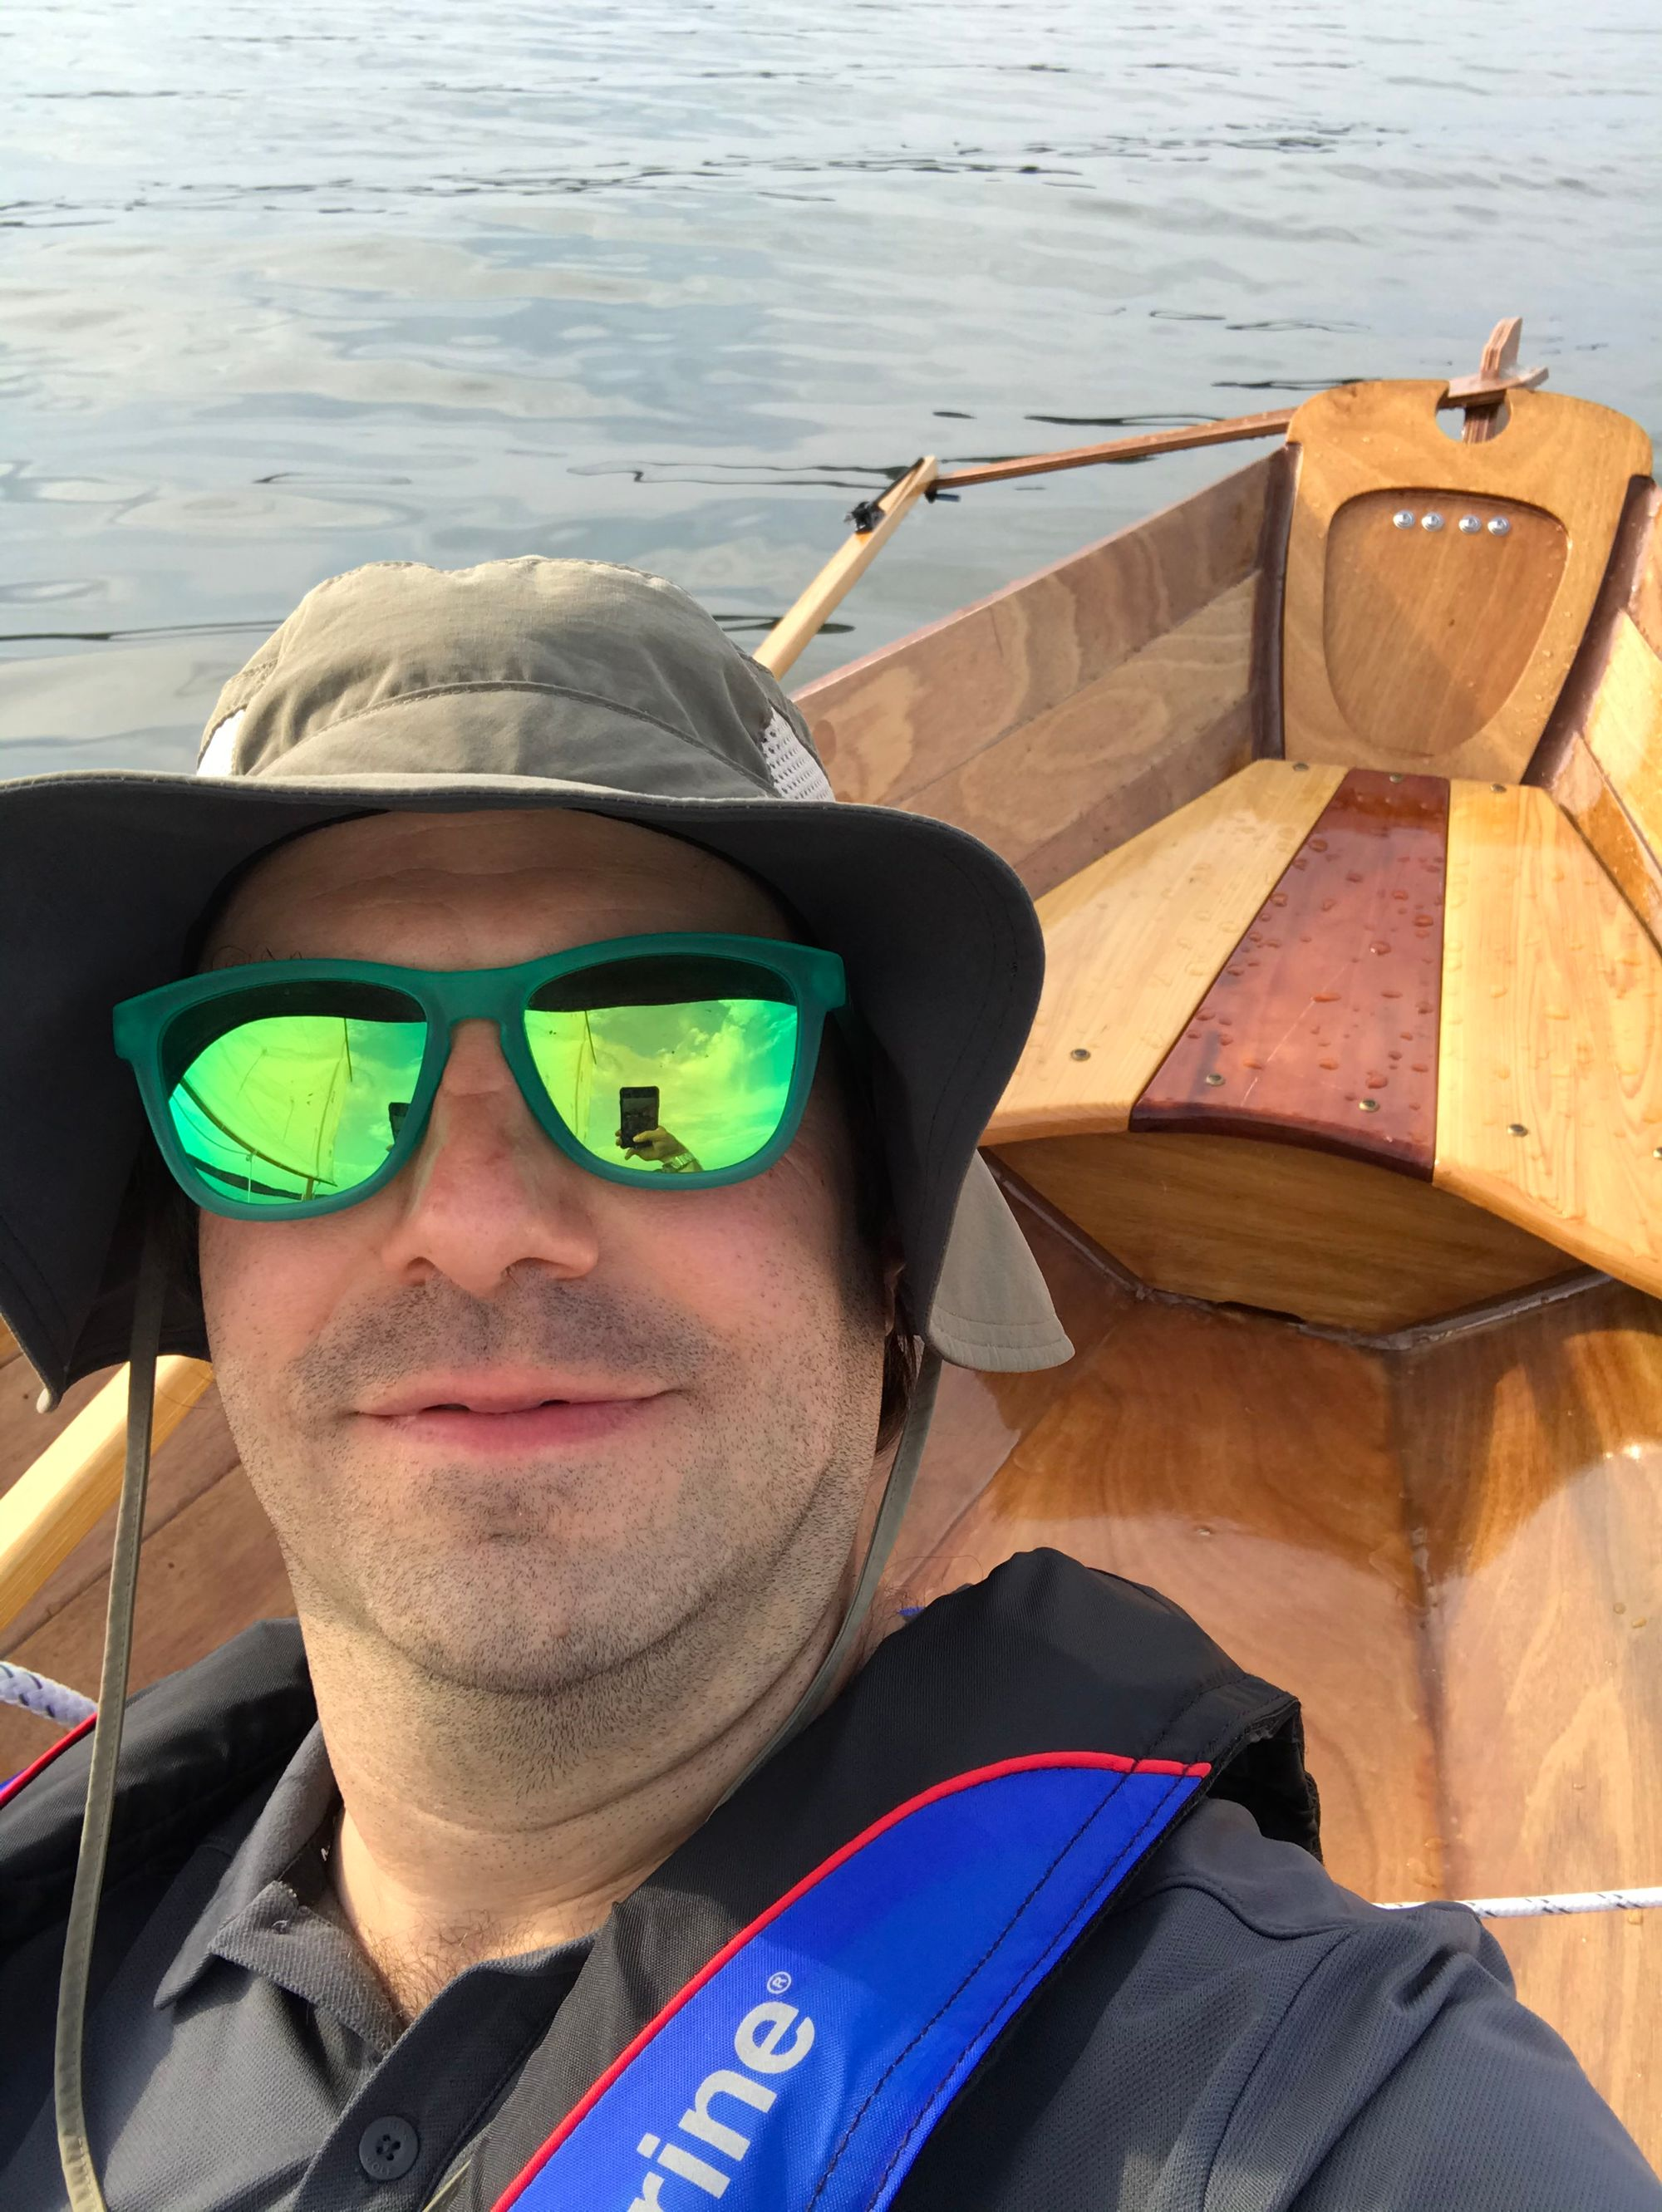 Selfie of the skipper In his new hat and the stern of the boat